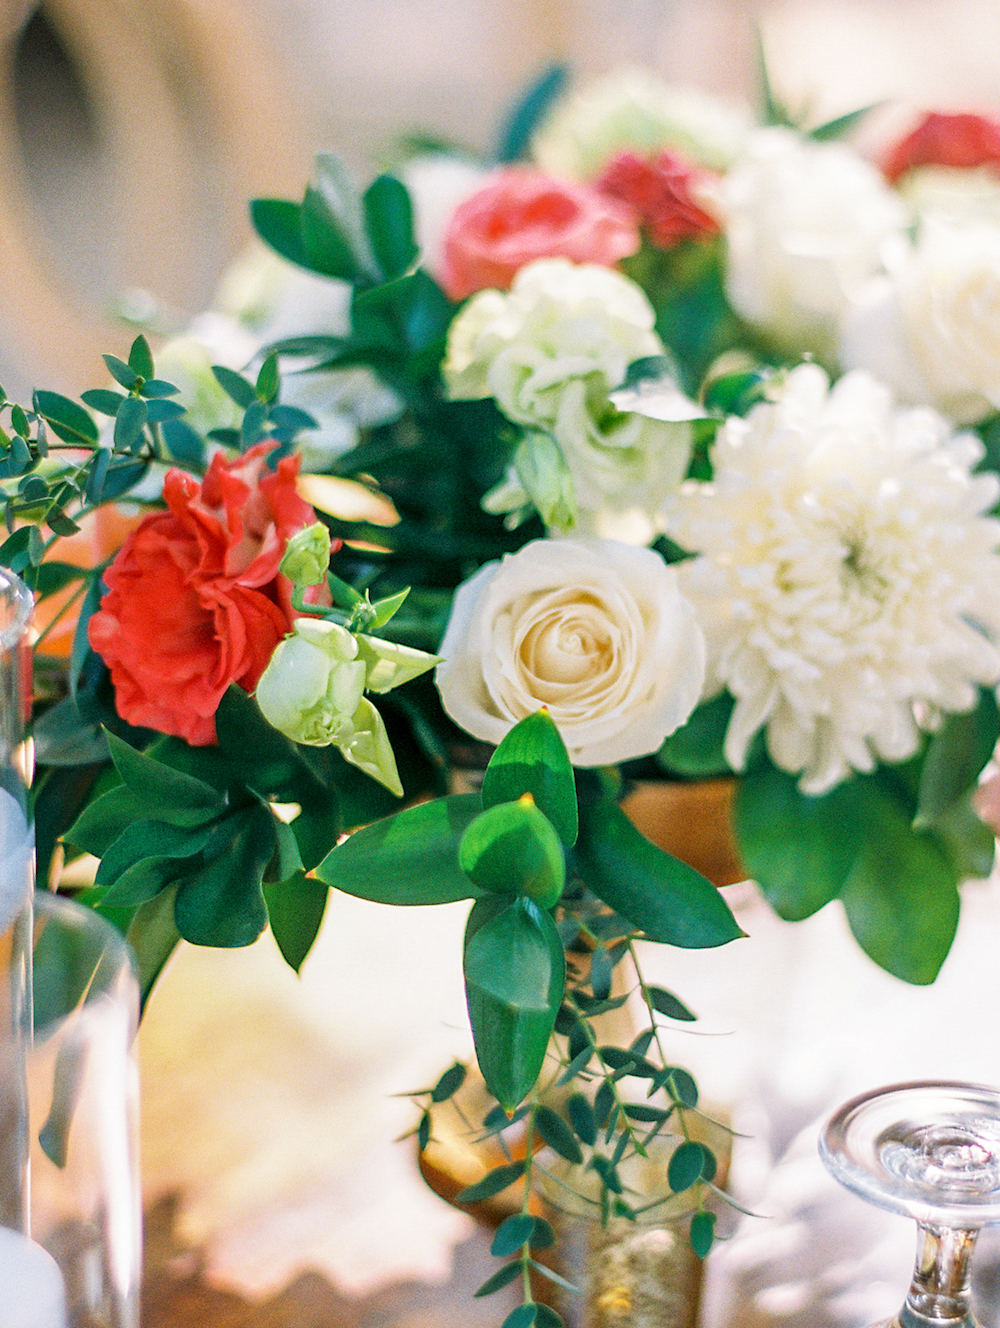 catherineannphotographywedding8418jessicapeterfilm30.jpg